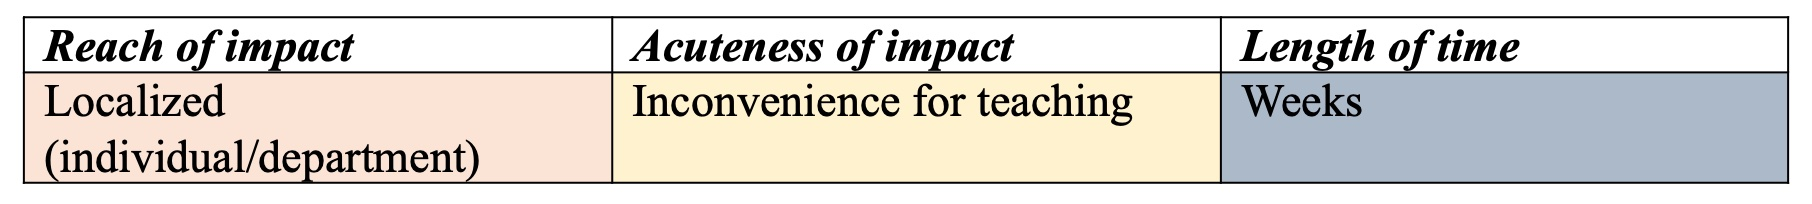 A table with three columns and one row. The columns are labeled from left to right: Reach of Impact, Acuteness of Impact, and Length of Time. From left to right the descriptions under each of these columns is: Localized (individual/department), Inconvenience for teaching, and Weeks.